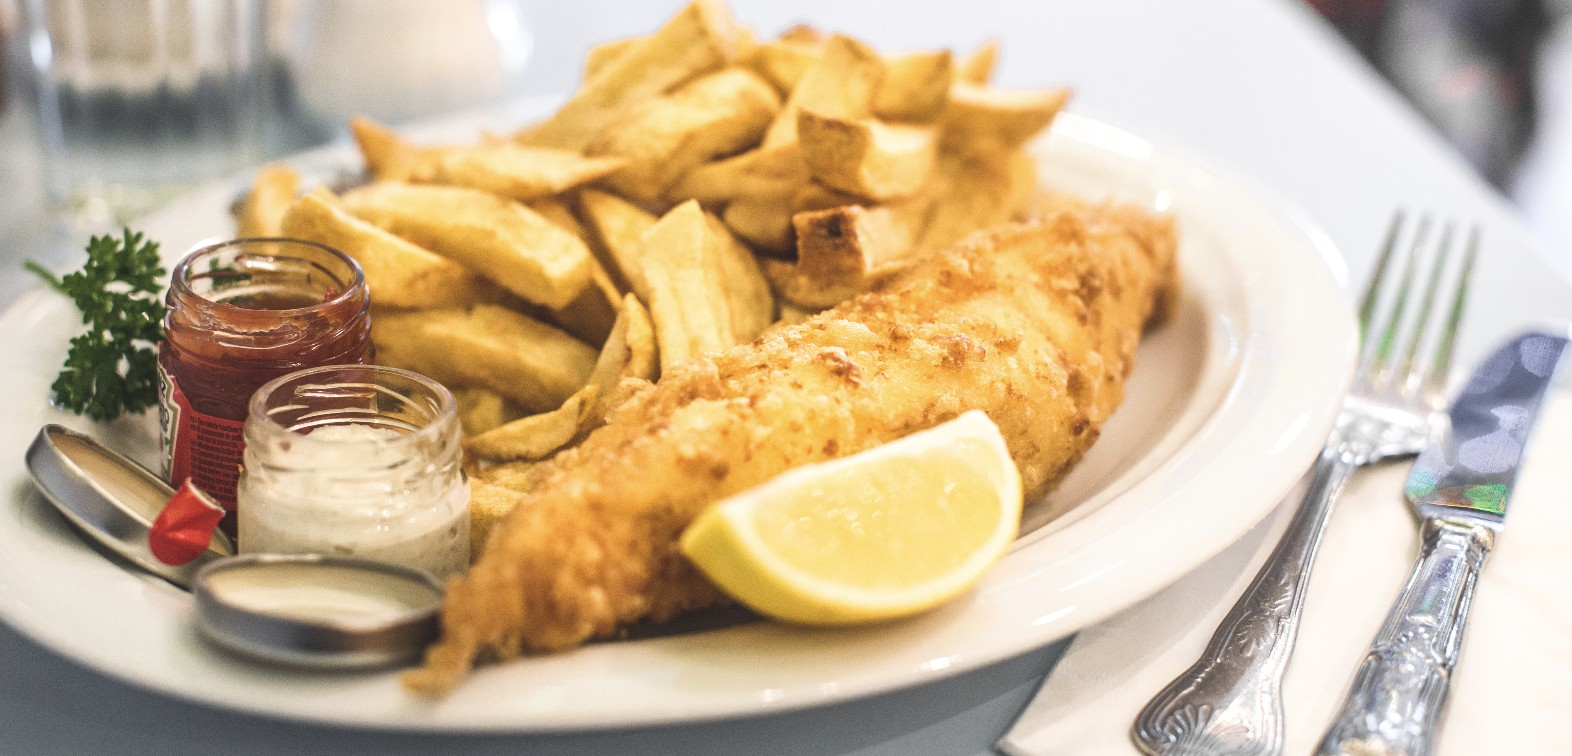 Poppies Fish & Chips - Shoreditch - London - The Infatuation